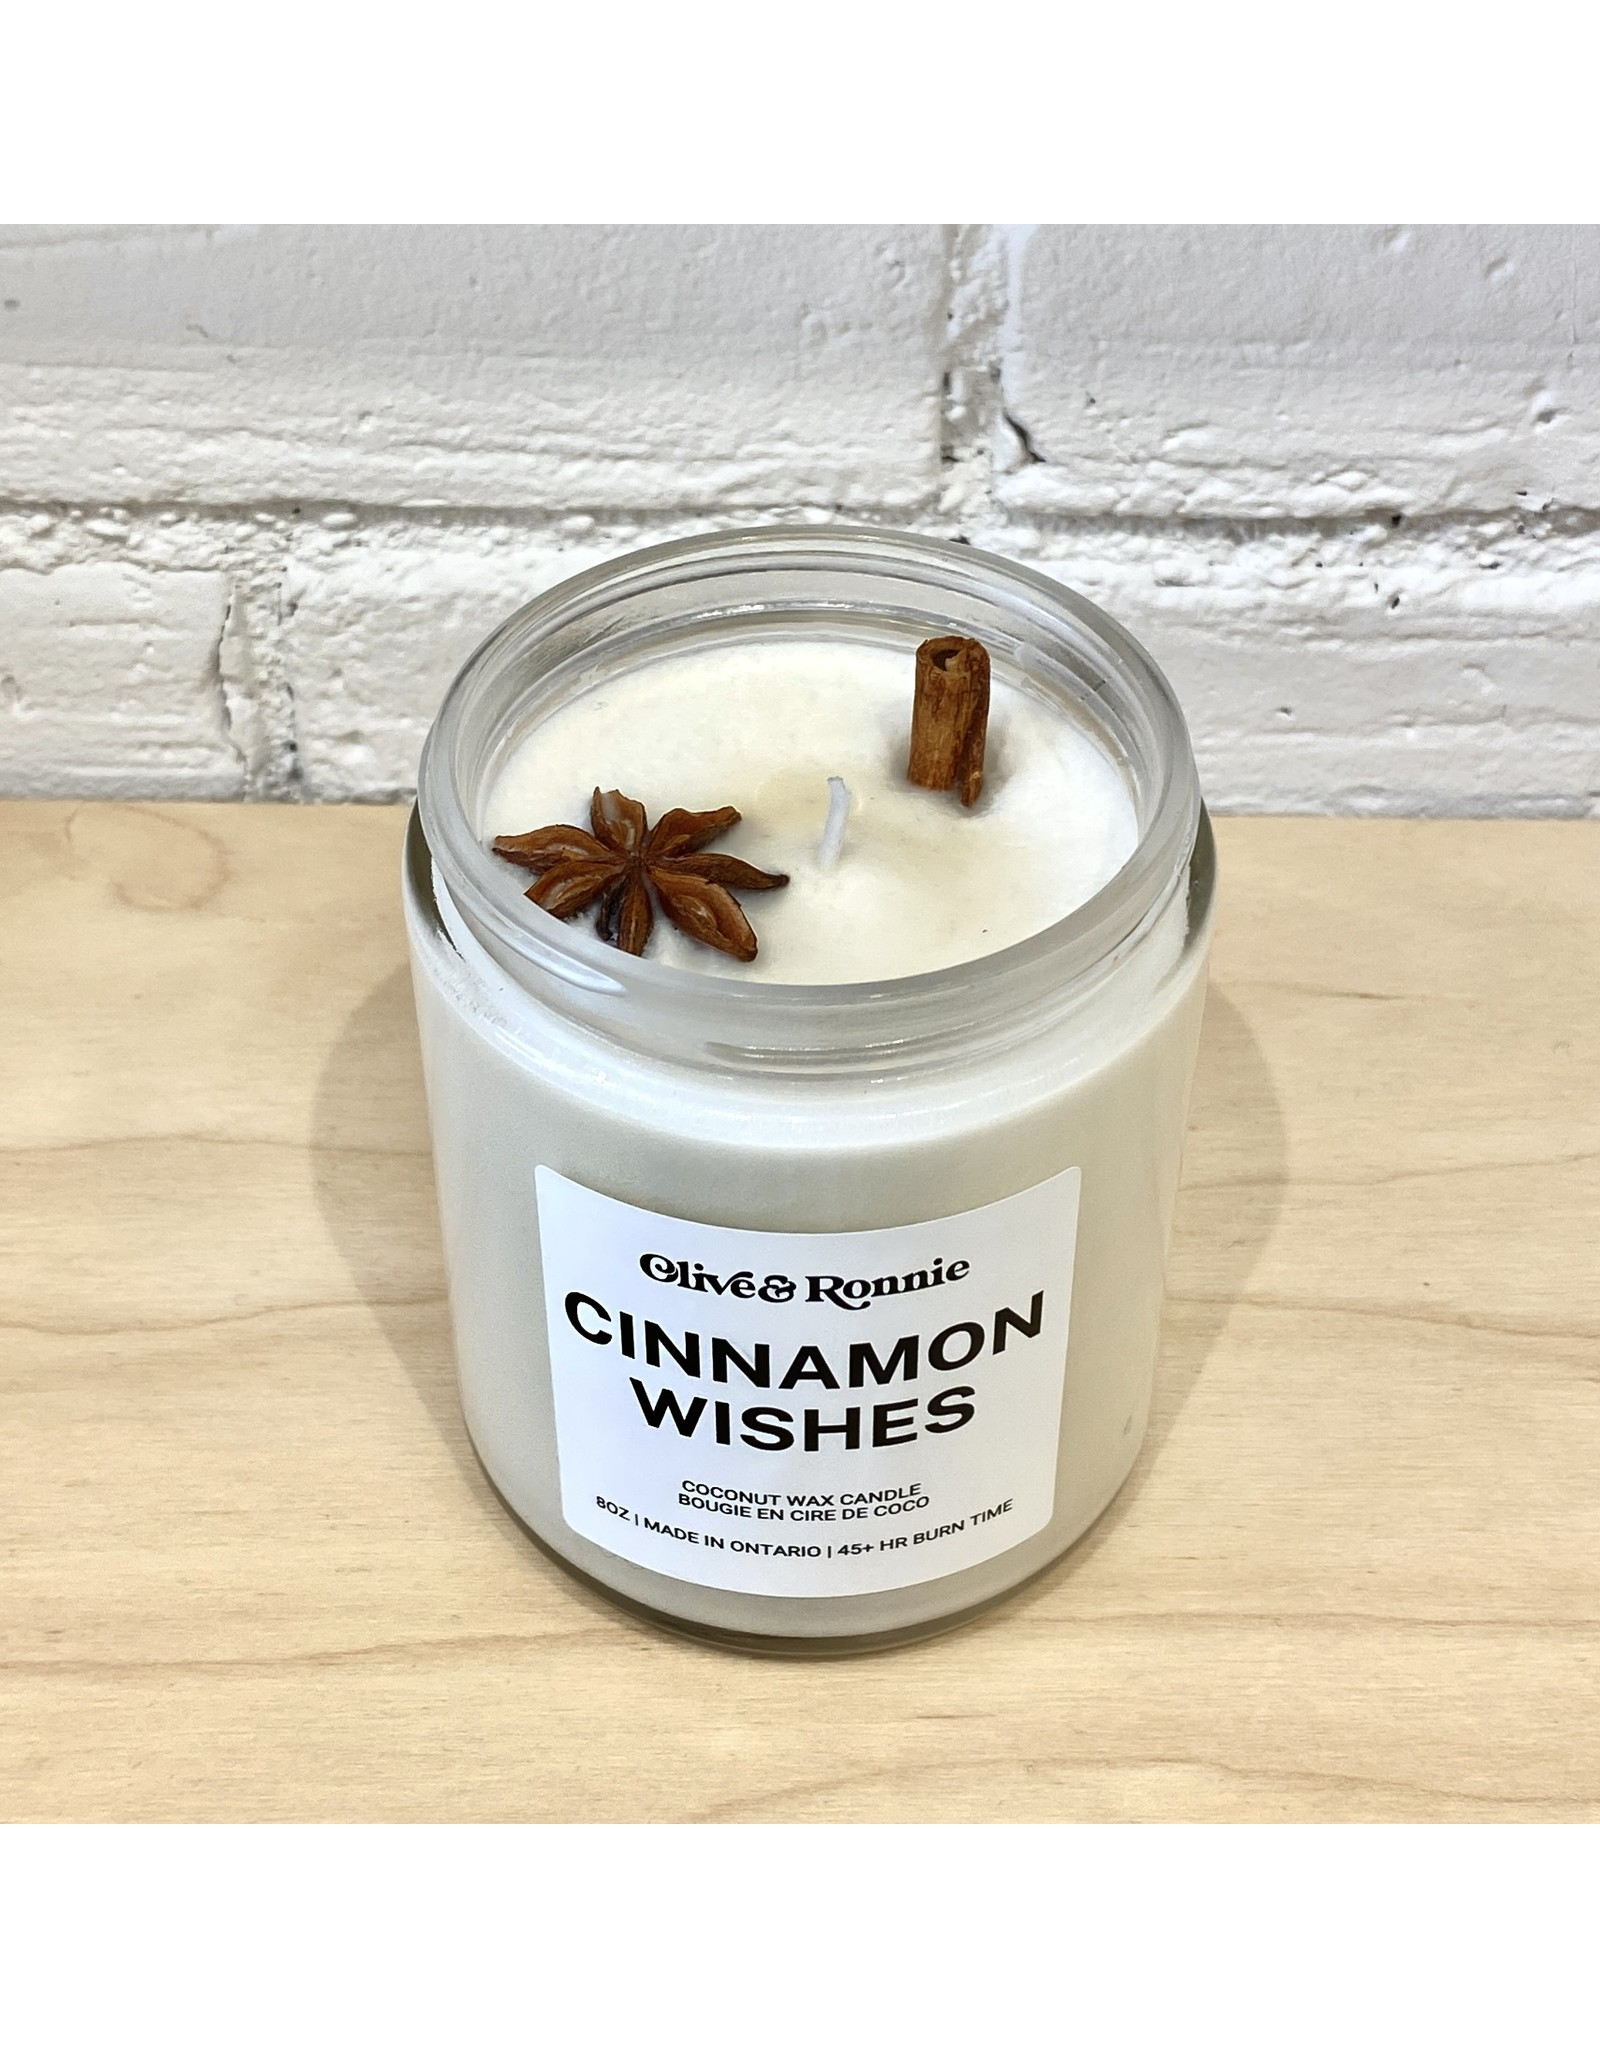 Olive & Ronnie Cinnamon Wishes Candle